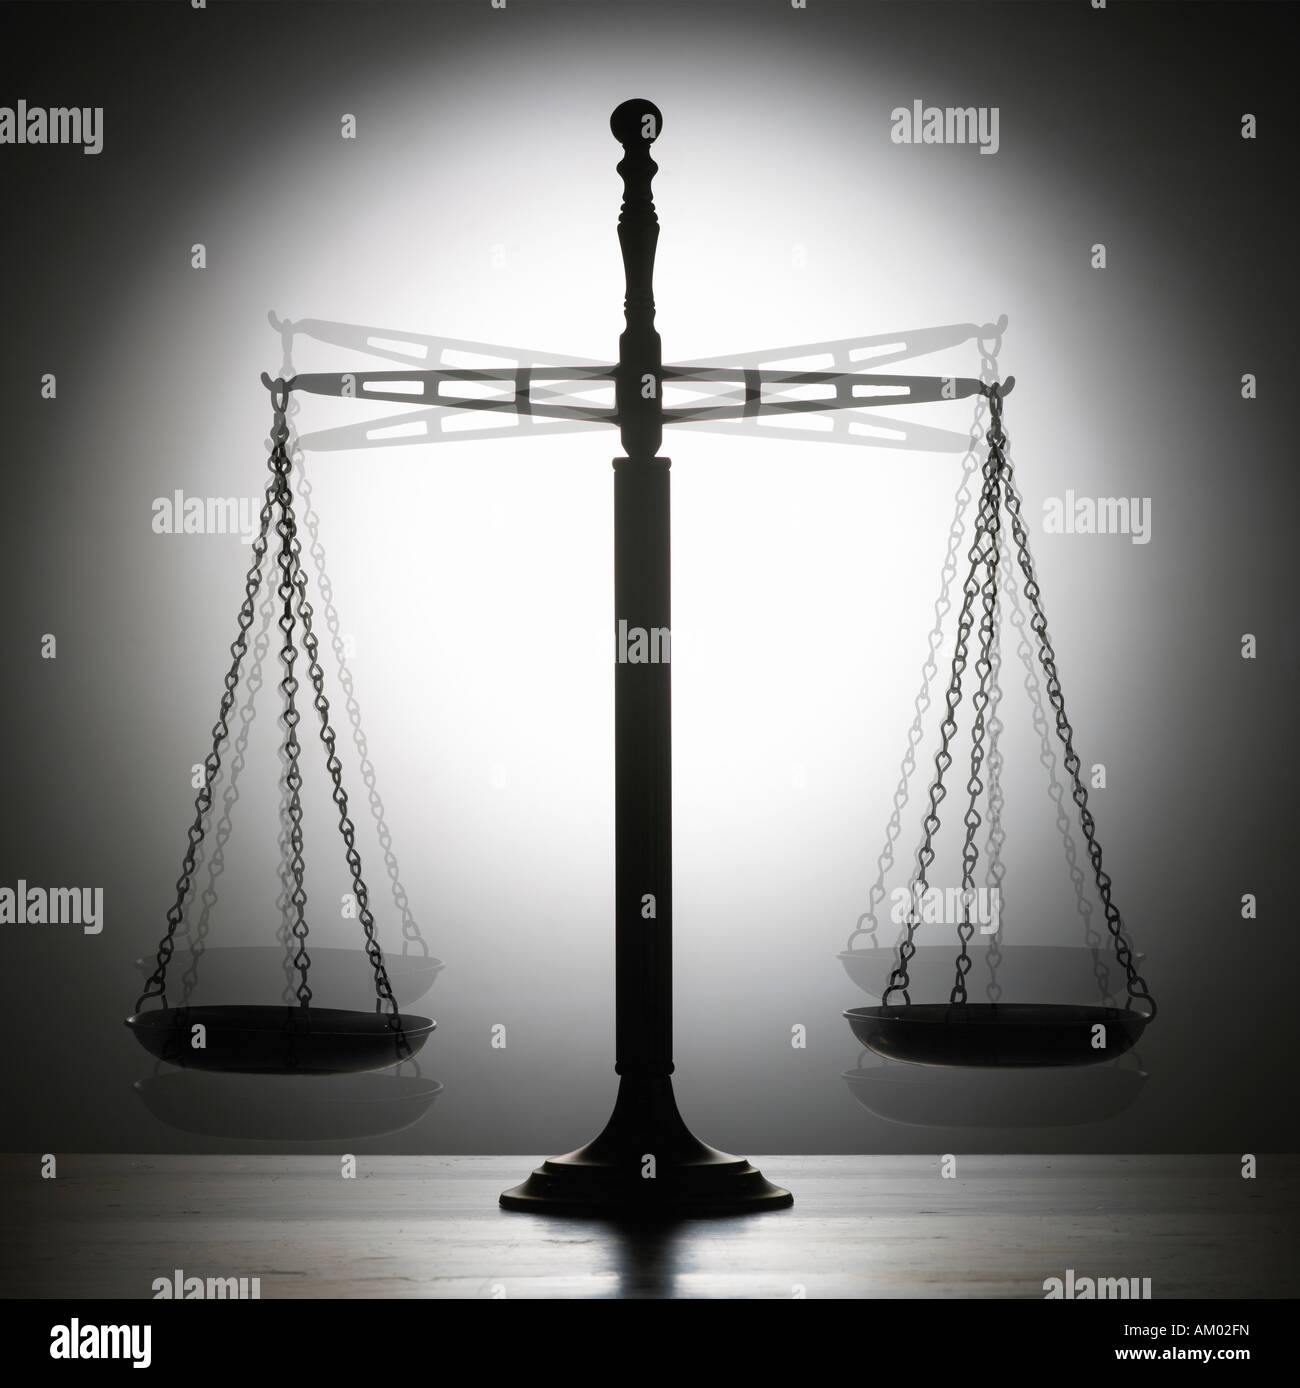 SILHOUETTE OF ANTIQUE BALANCE WEIGHING SCALES - Stock Image